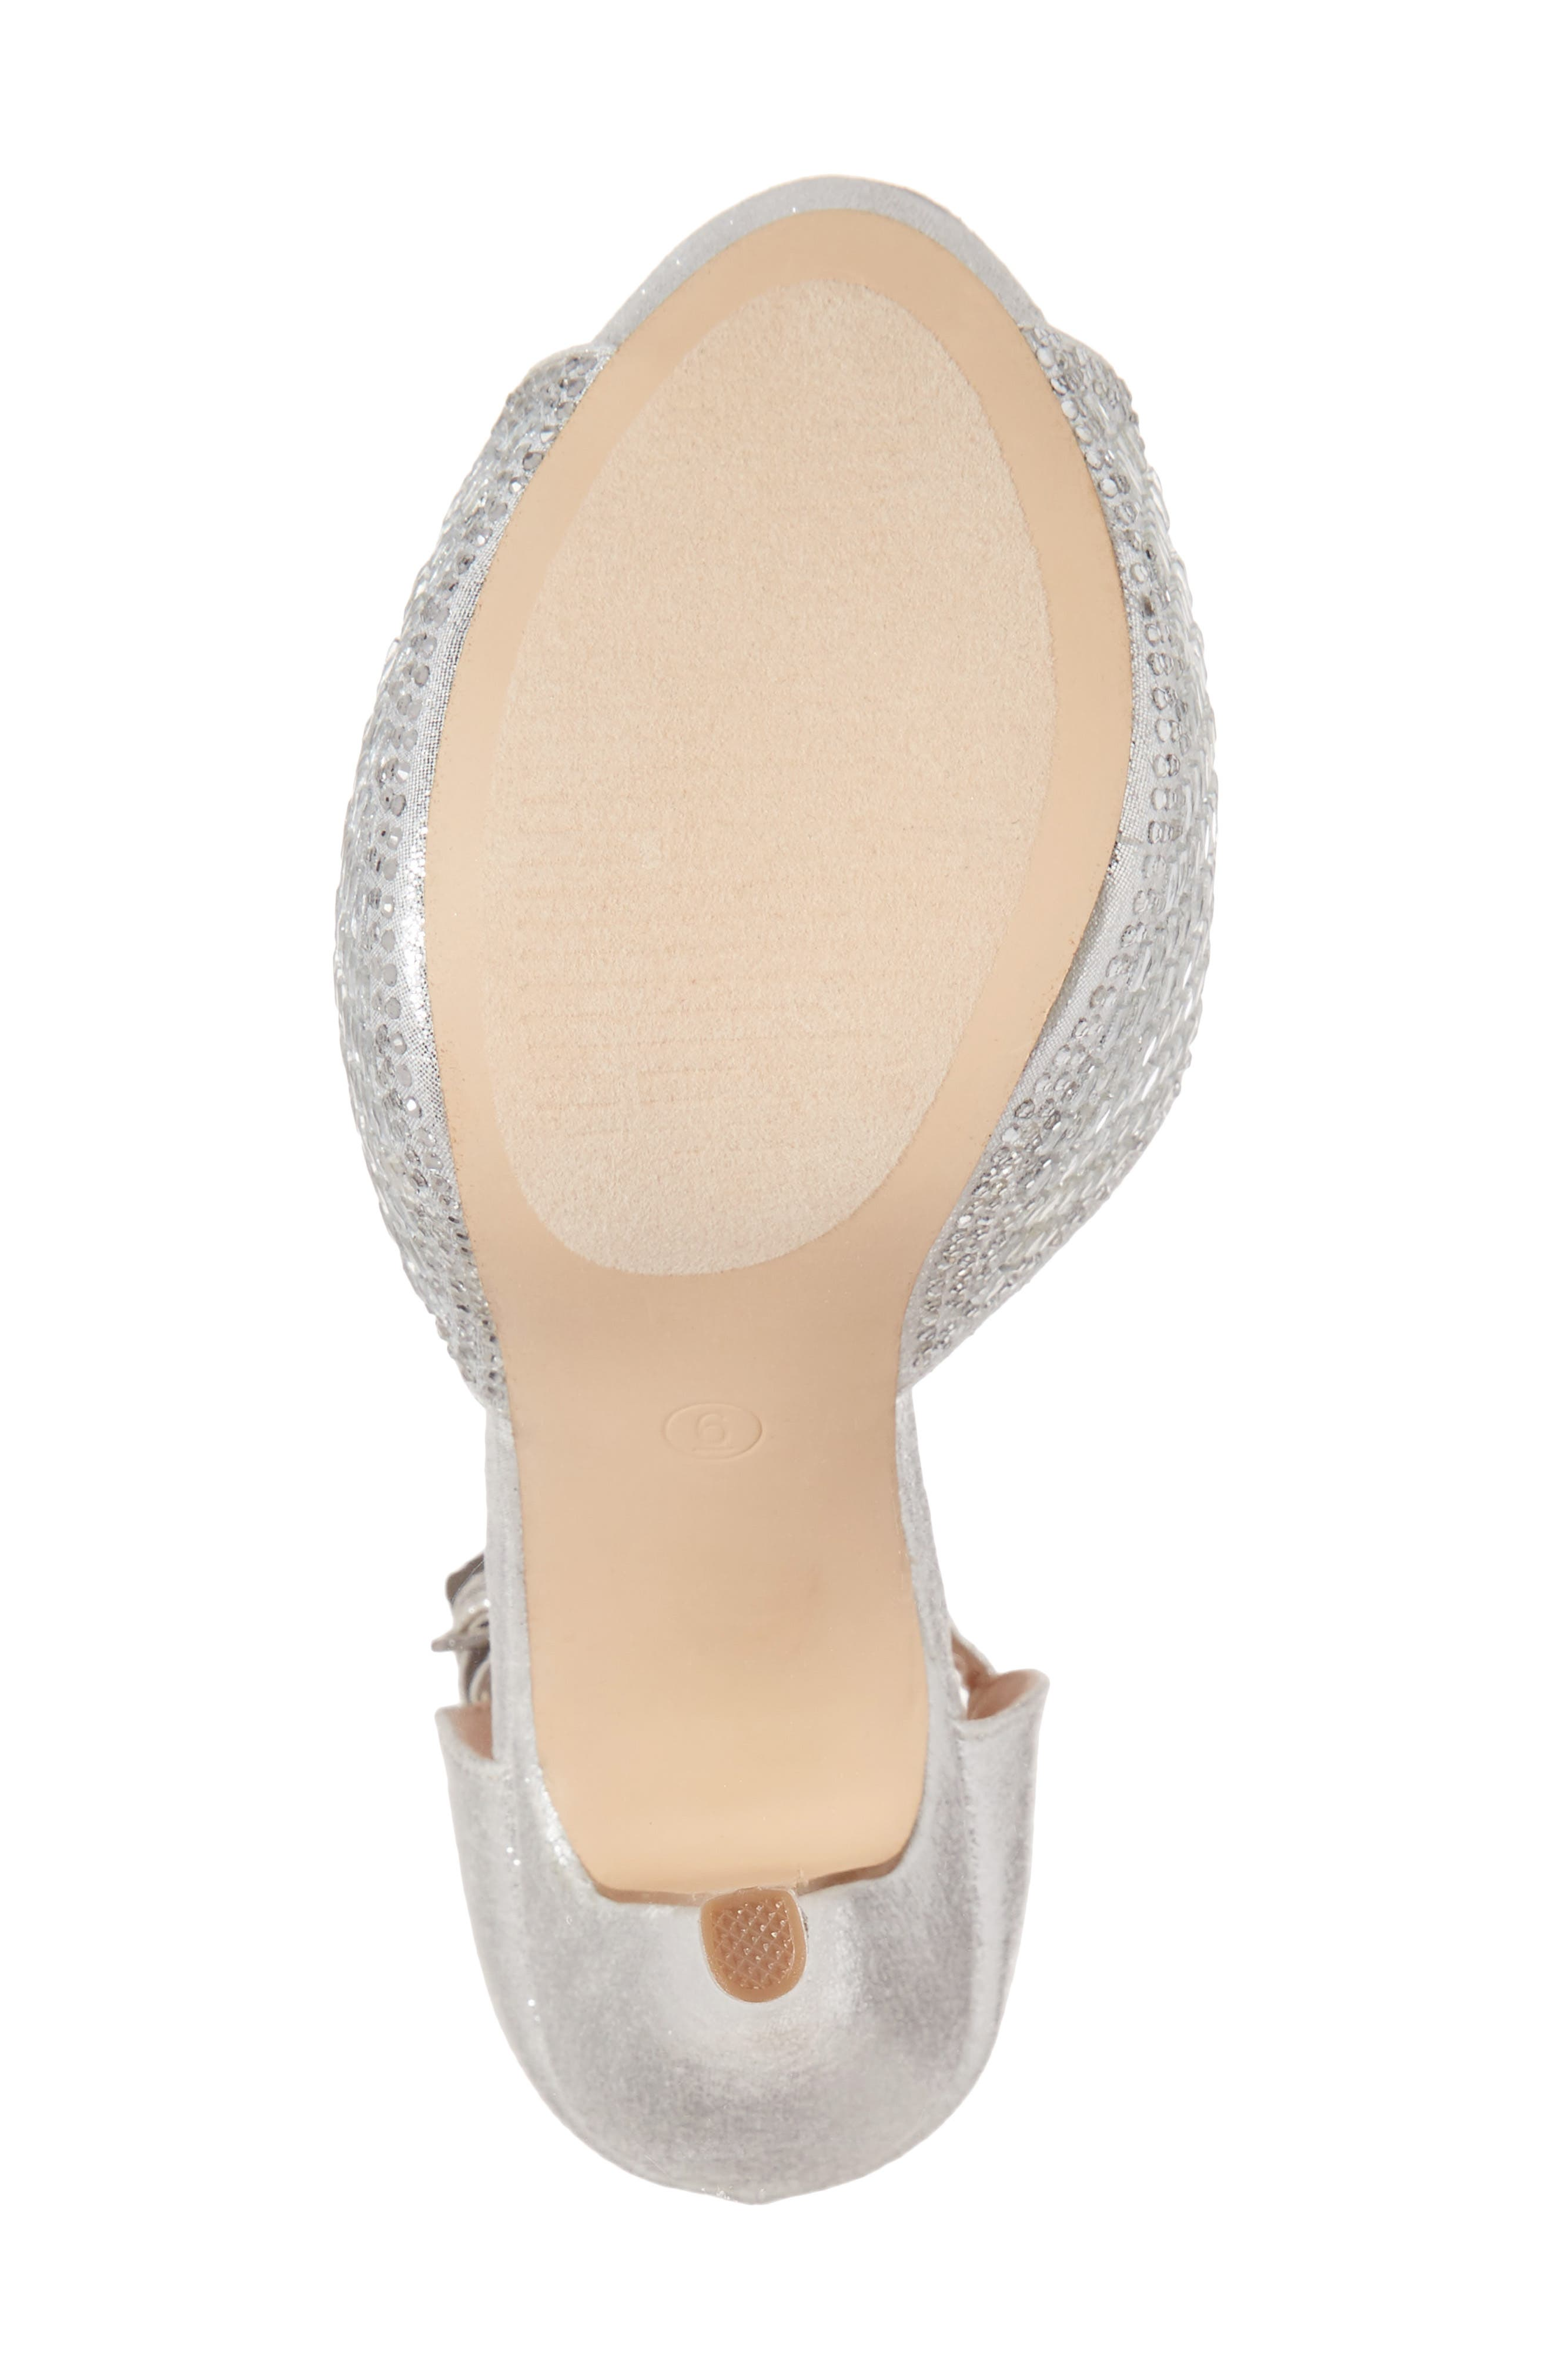 Vivian 4 Crystal Embellished Sandal,                             Alternate thumbnail 17, color,